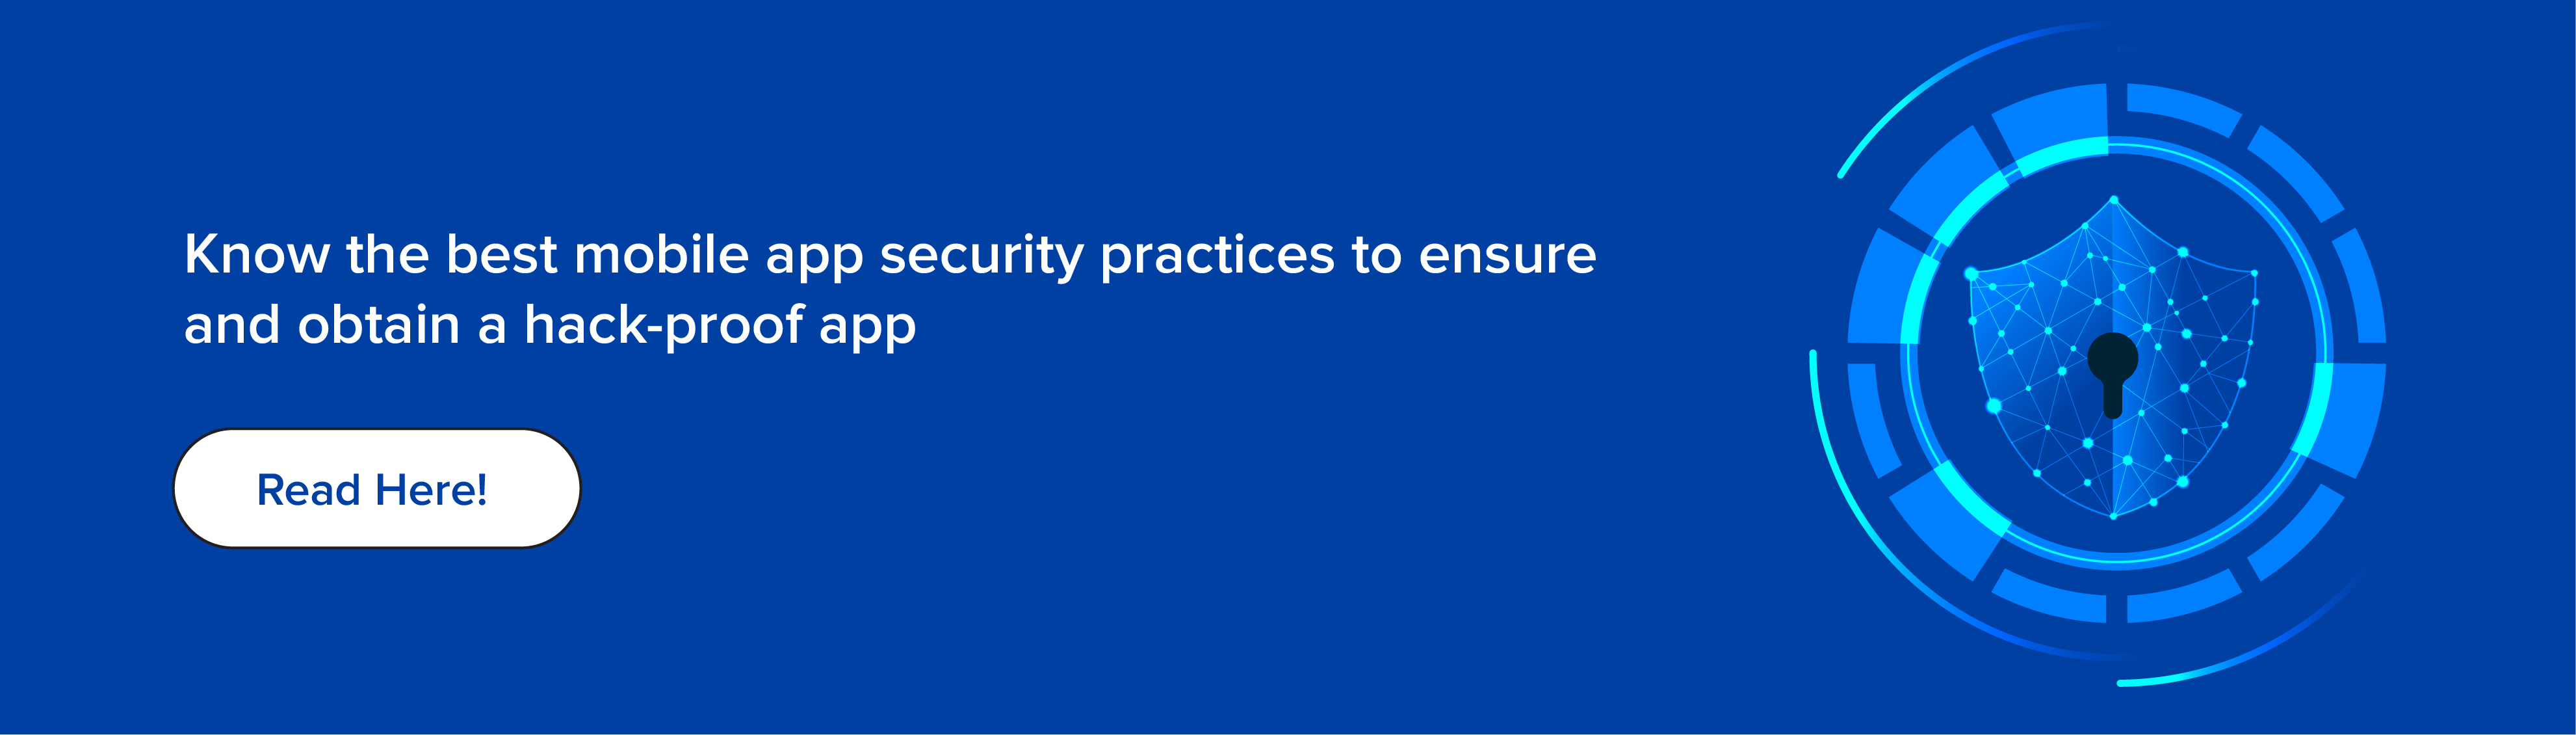 Know the best mobile app security practices